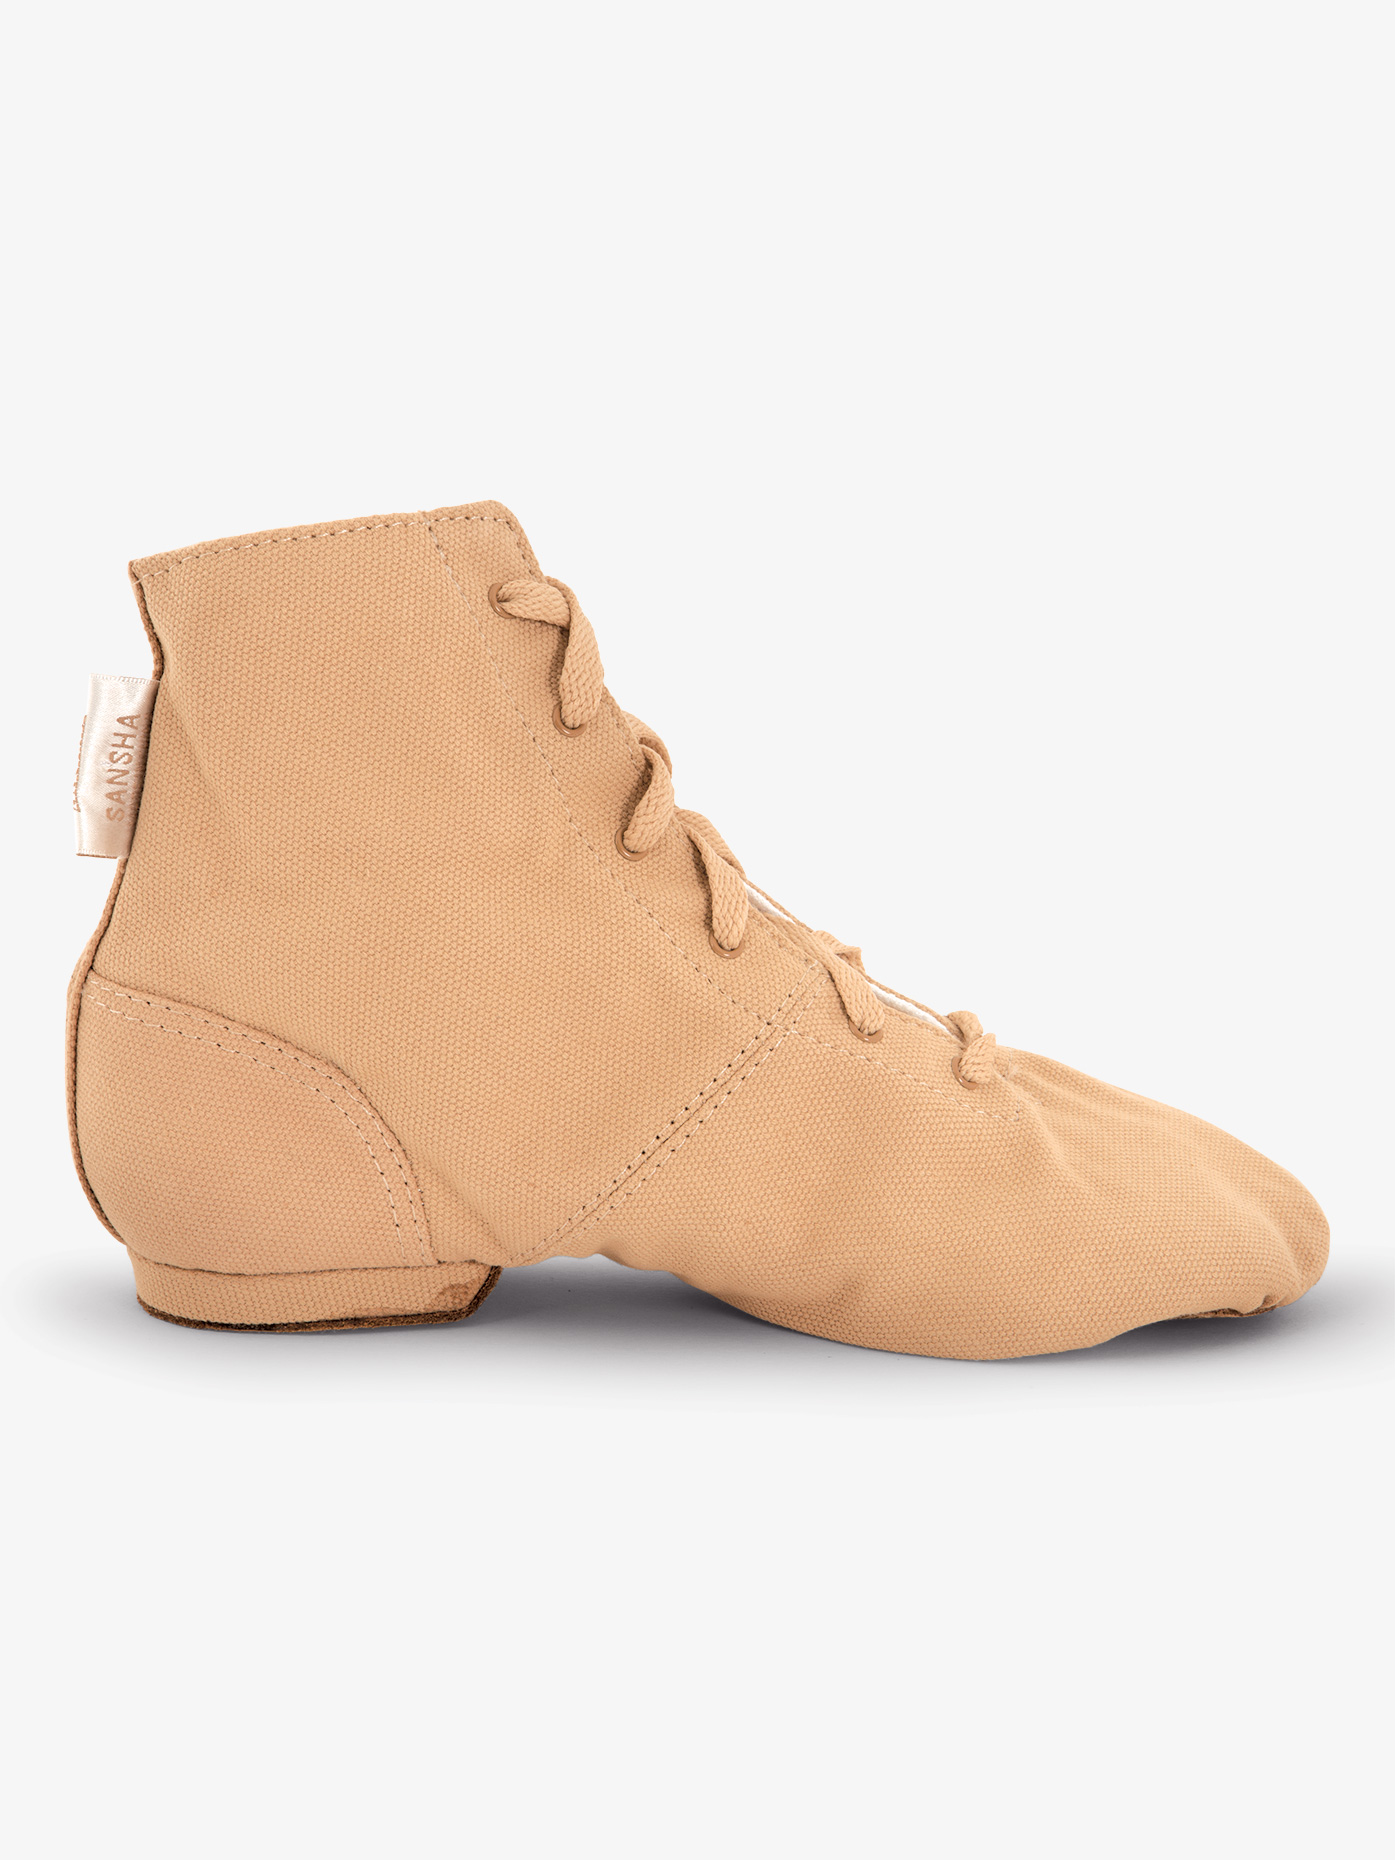 Sansha Adult Canvas Dance Boots JB3